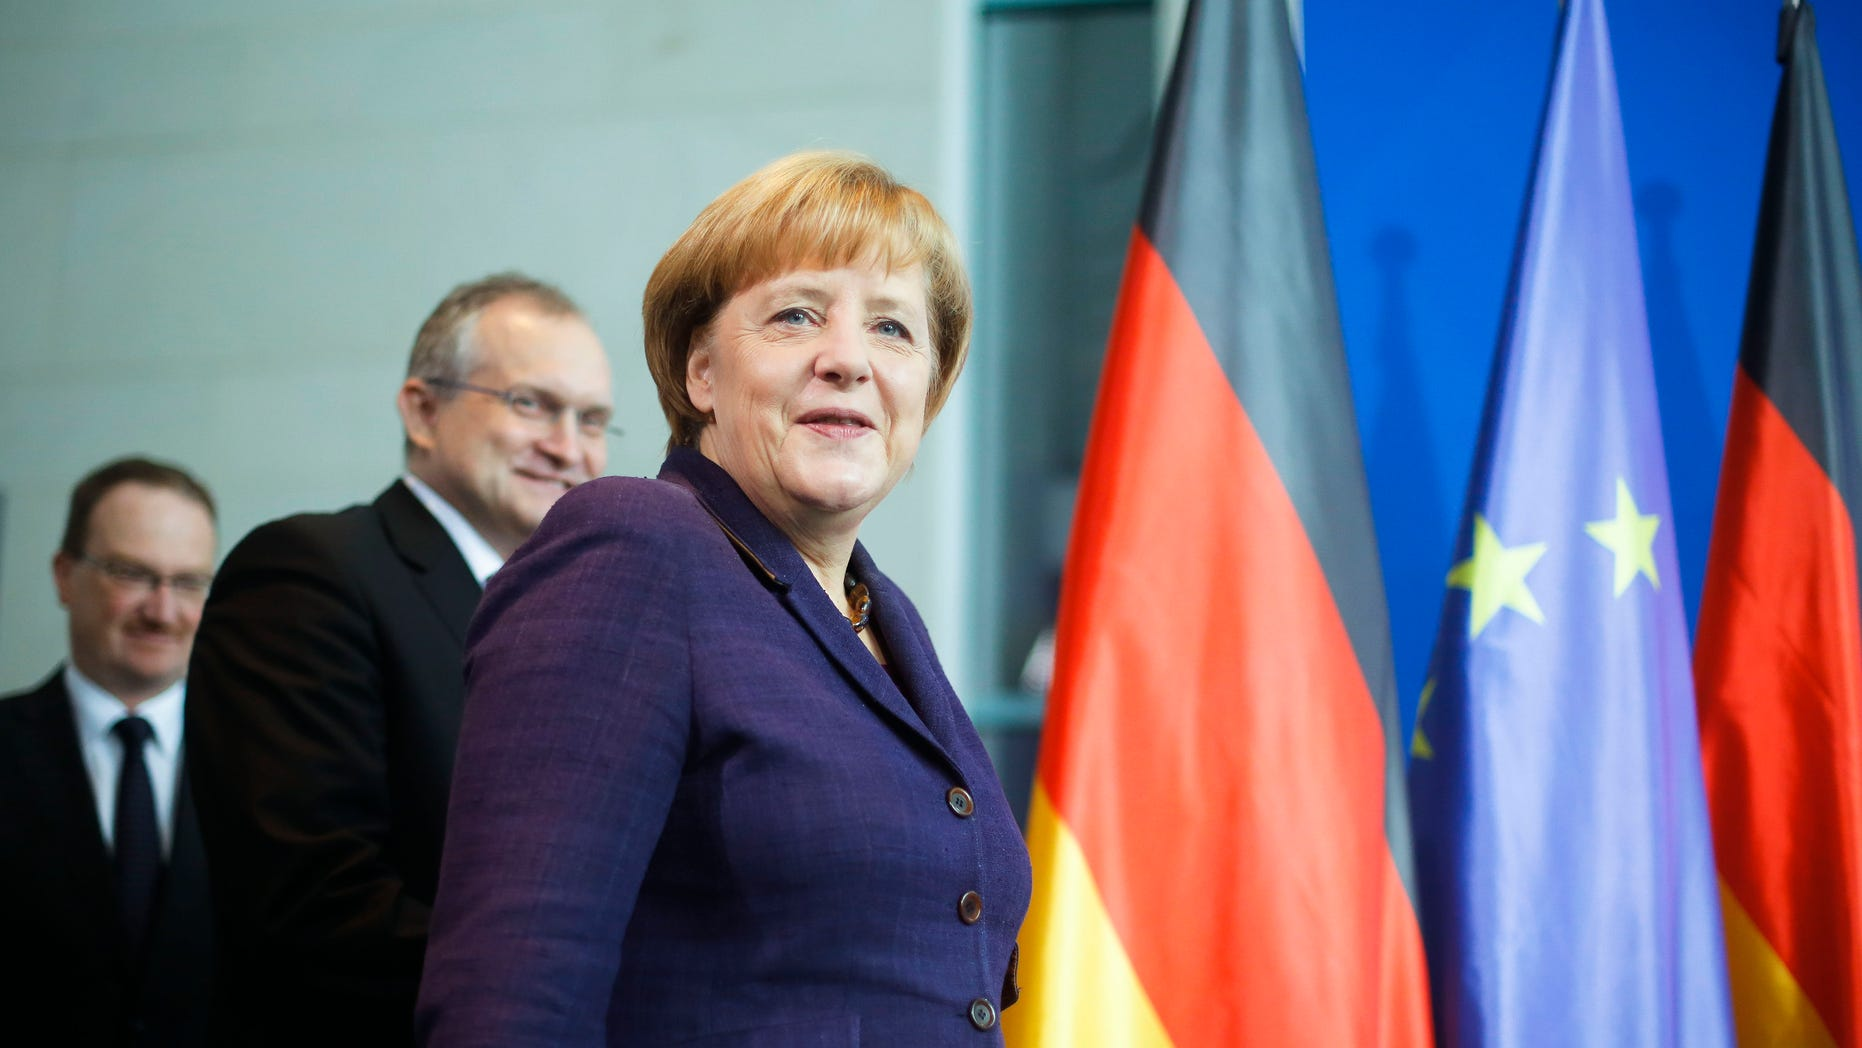 German Chancellor Angela Merkel is followed by economy advisers Lars Feld, left, and Christoph Schmidt, center, as they arrive for the hand-over ceremony of the prognosis for Germany's economy in the upcoming year at the chancellery in Berlin, Wednesday, Nov. 13, 2013. (AP Photo/Markus Schreiber)